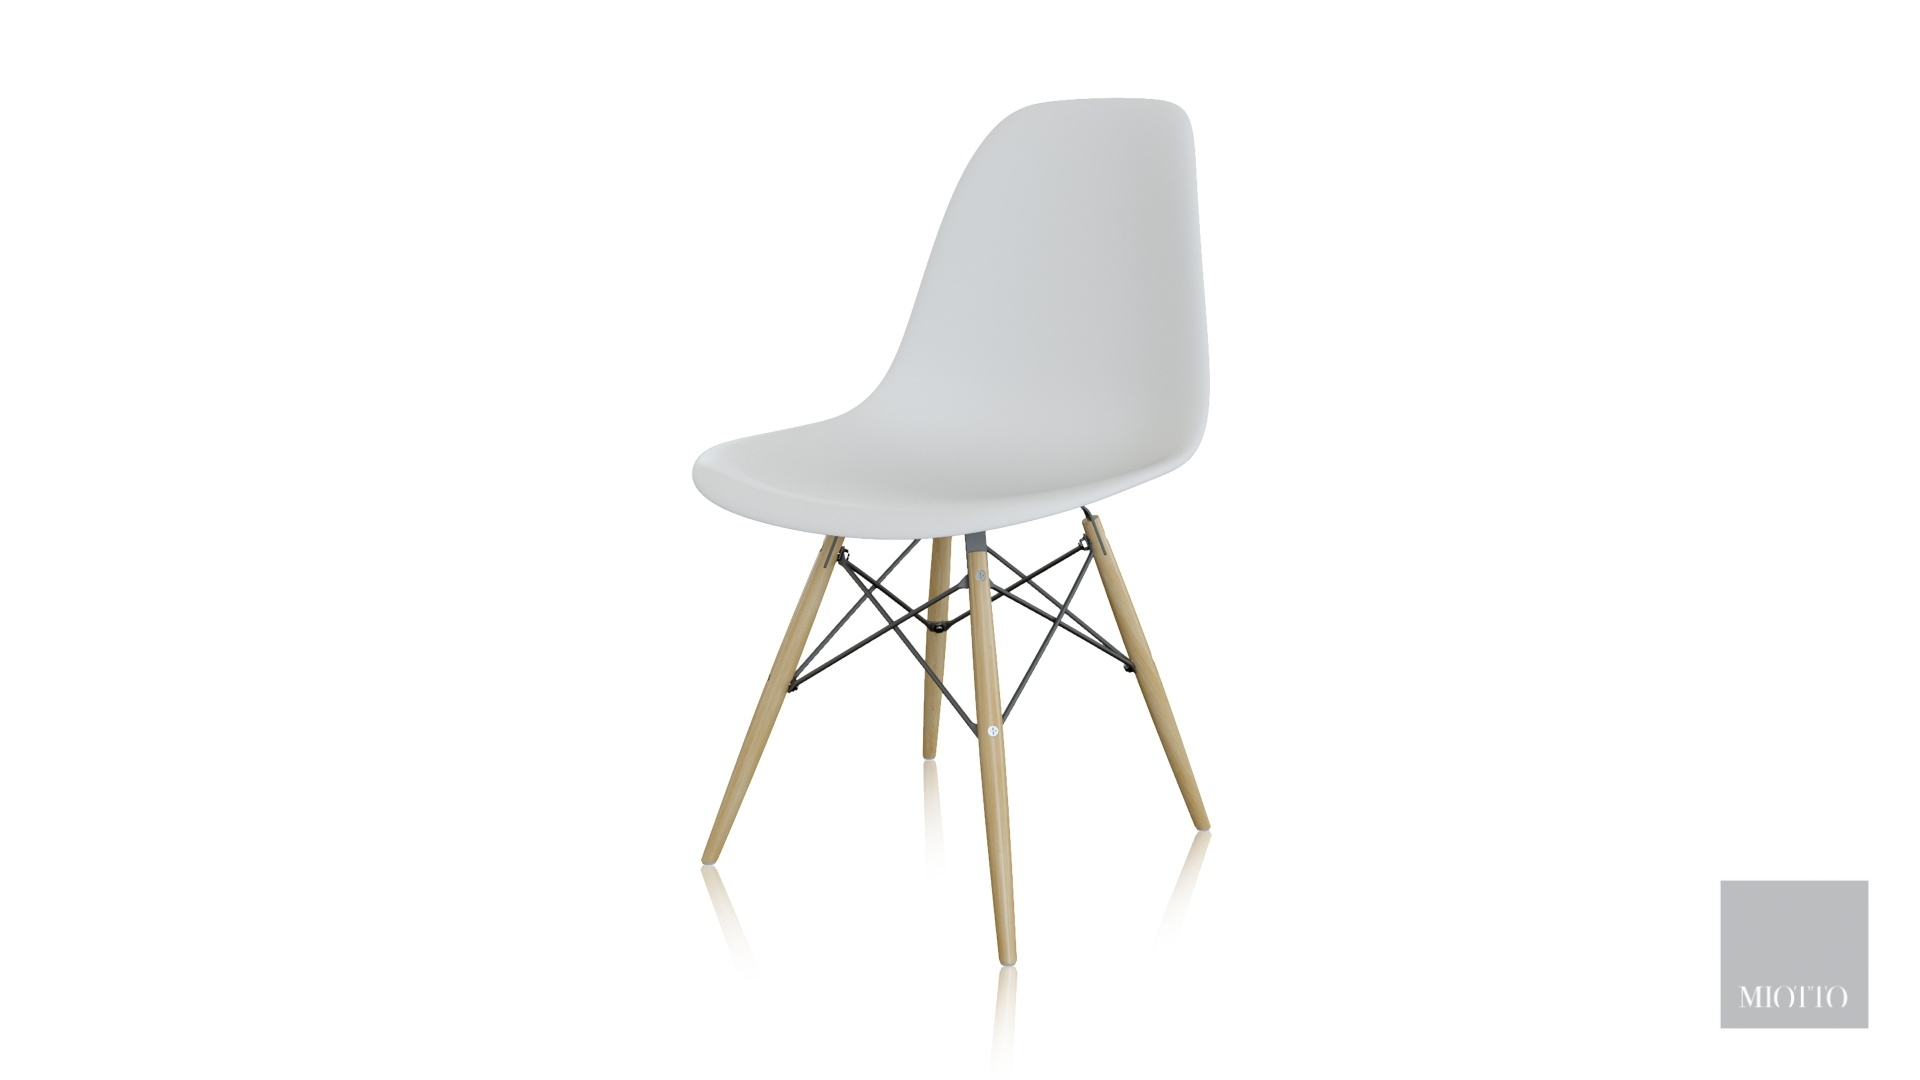 miotto_larici wood DC white front T miotto dining chair furniture